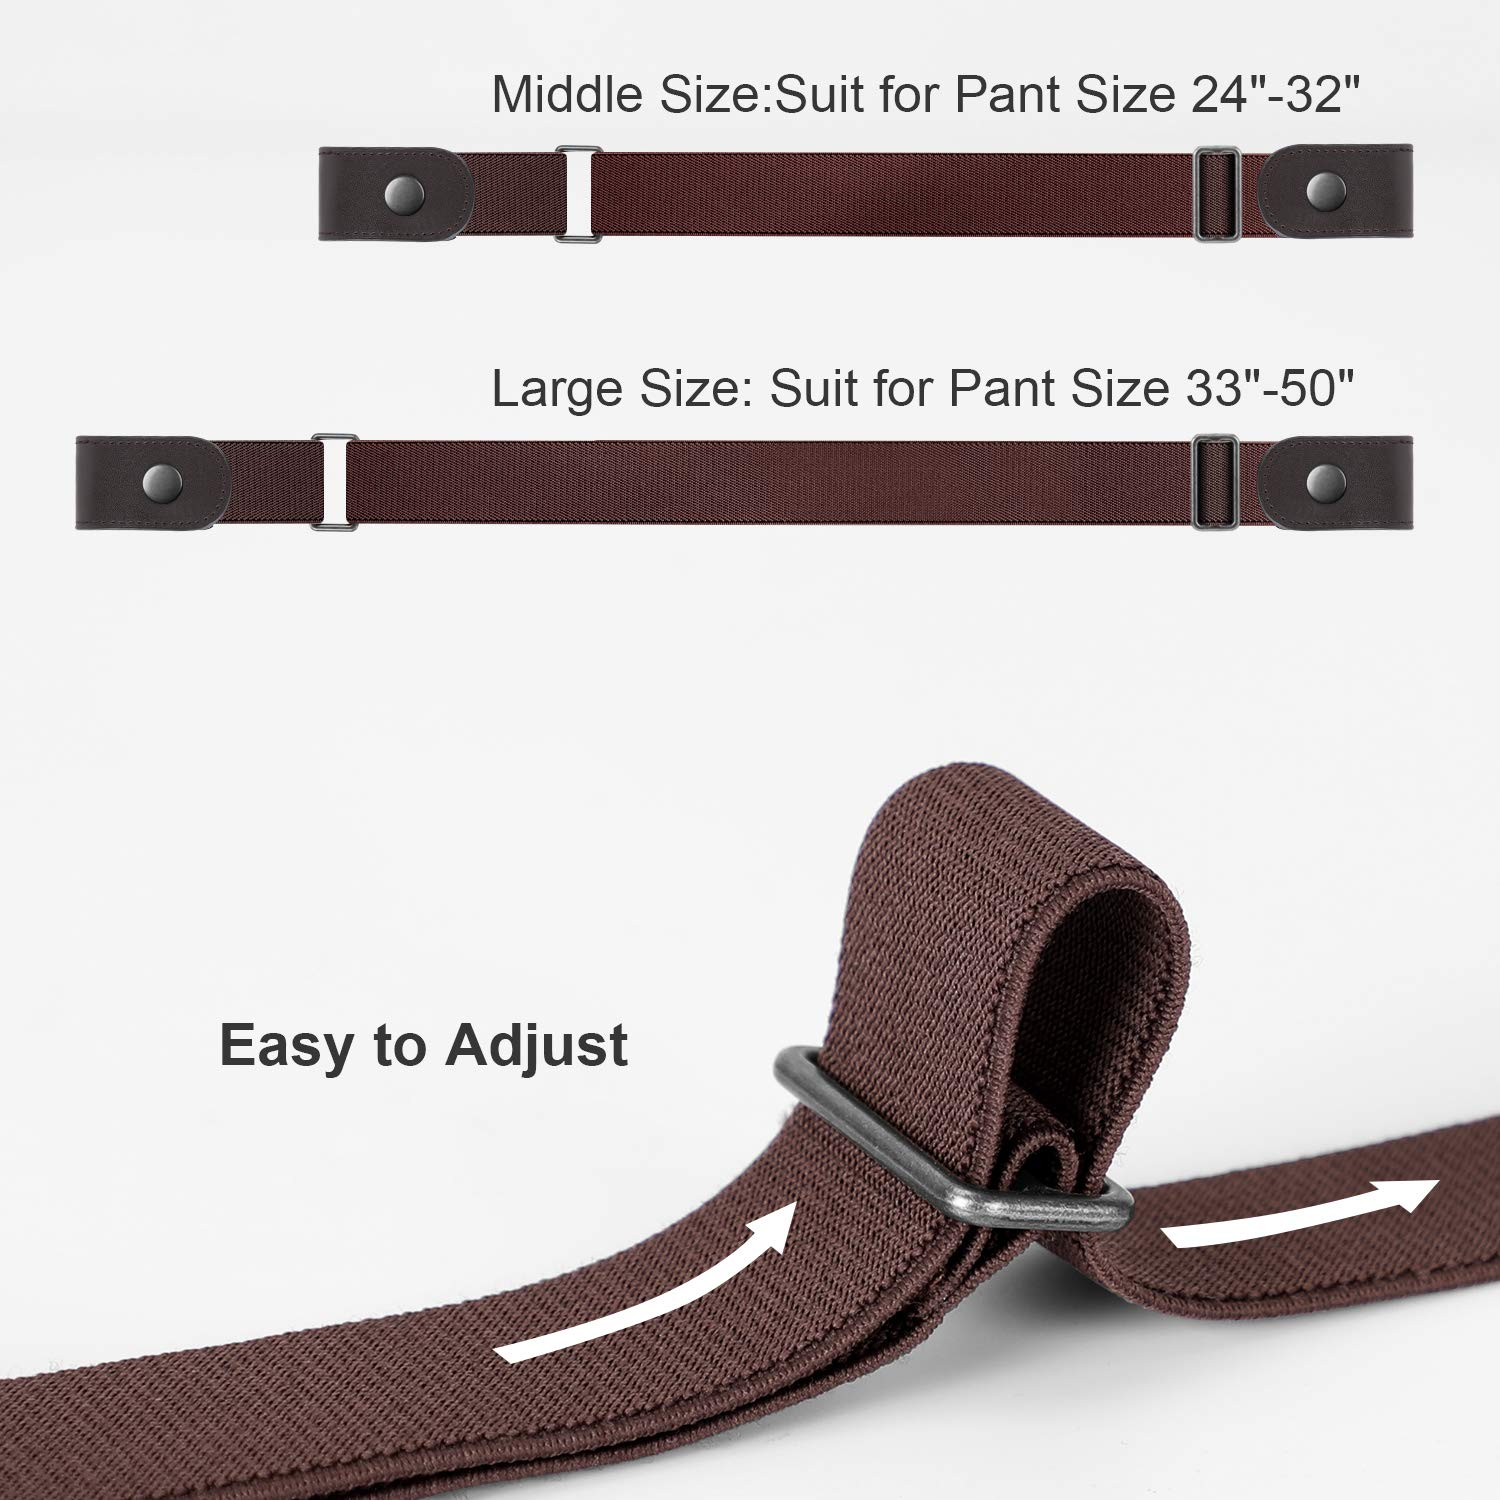 No Buckle Stretch Belt Women Plus Size Buckle Free No Show Invisible Belt for Jeans Pants Set of 2